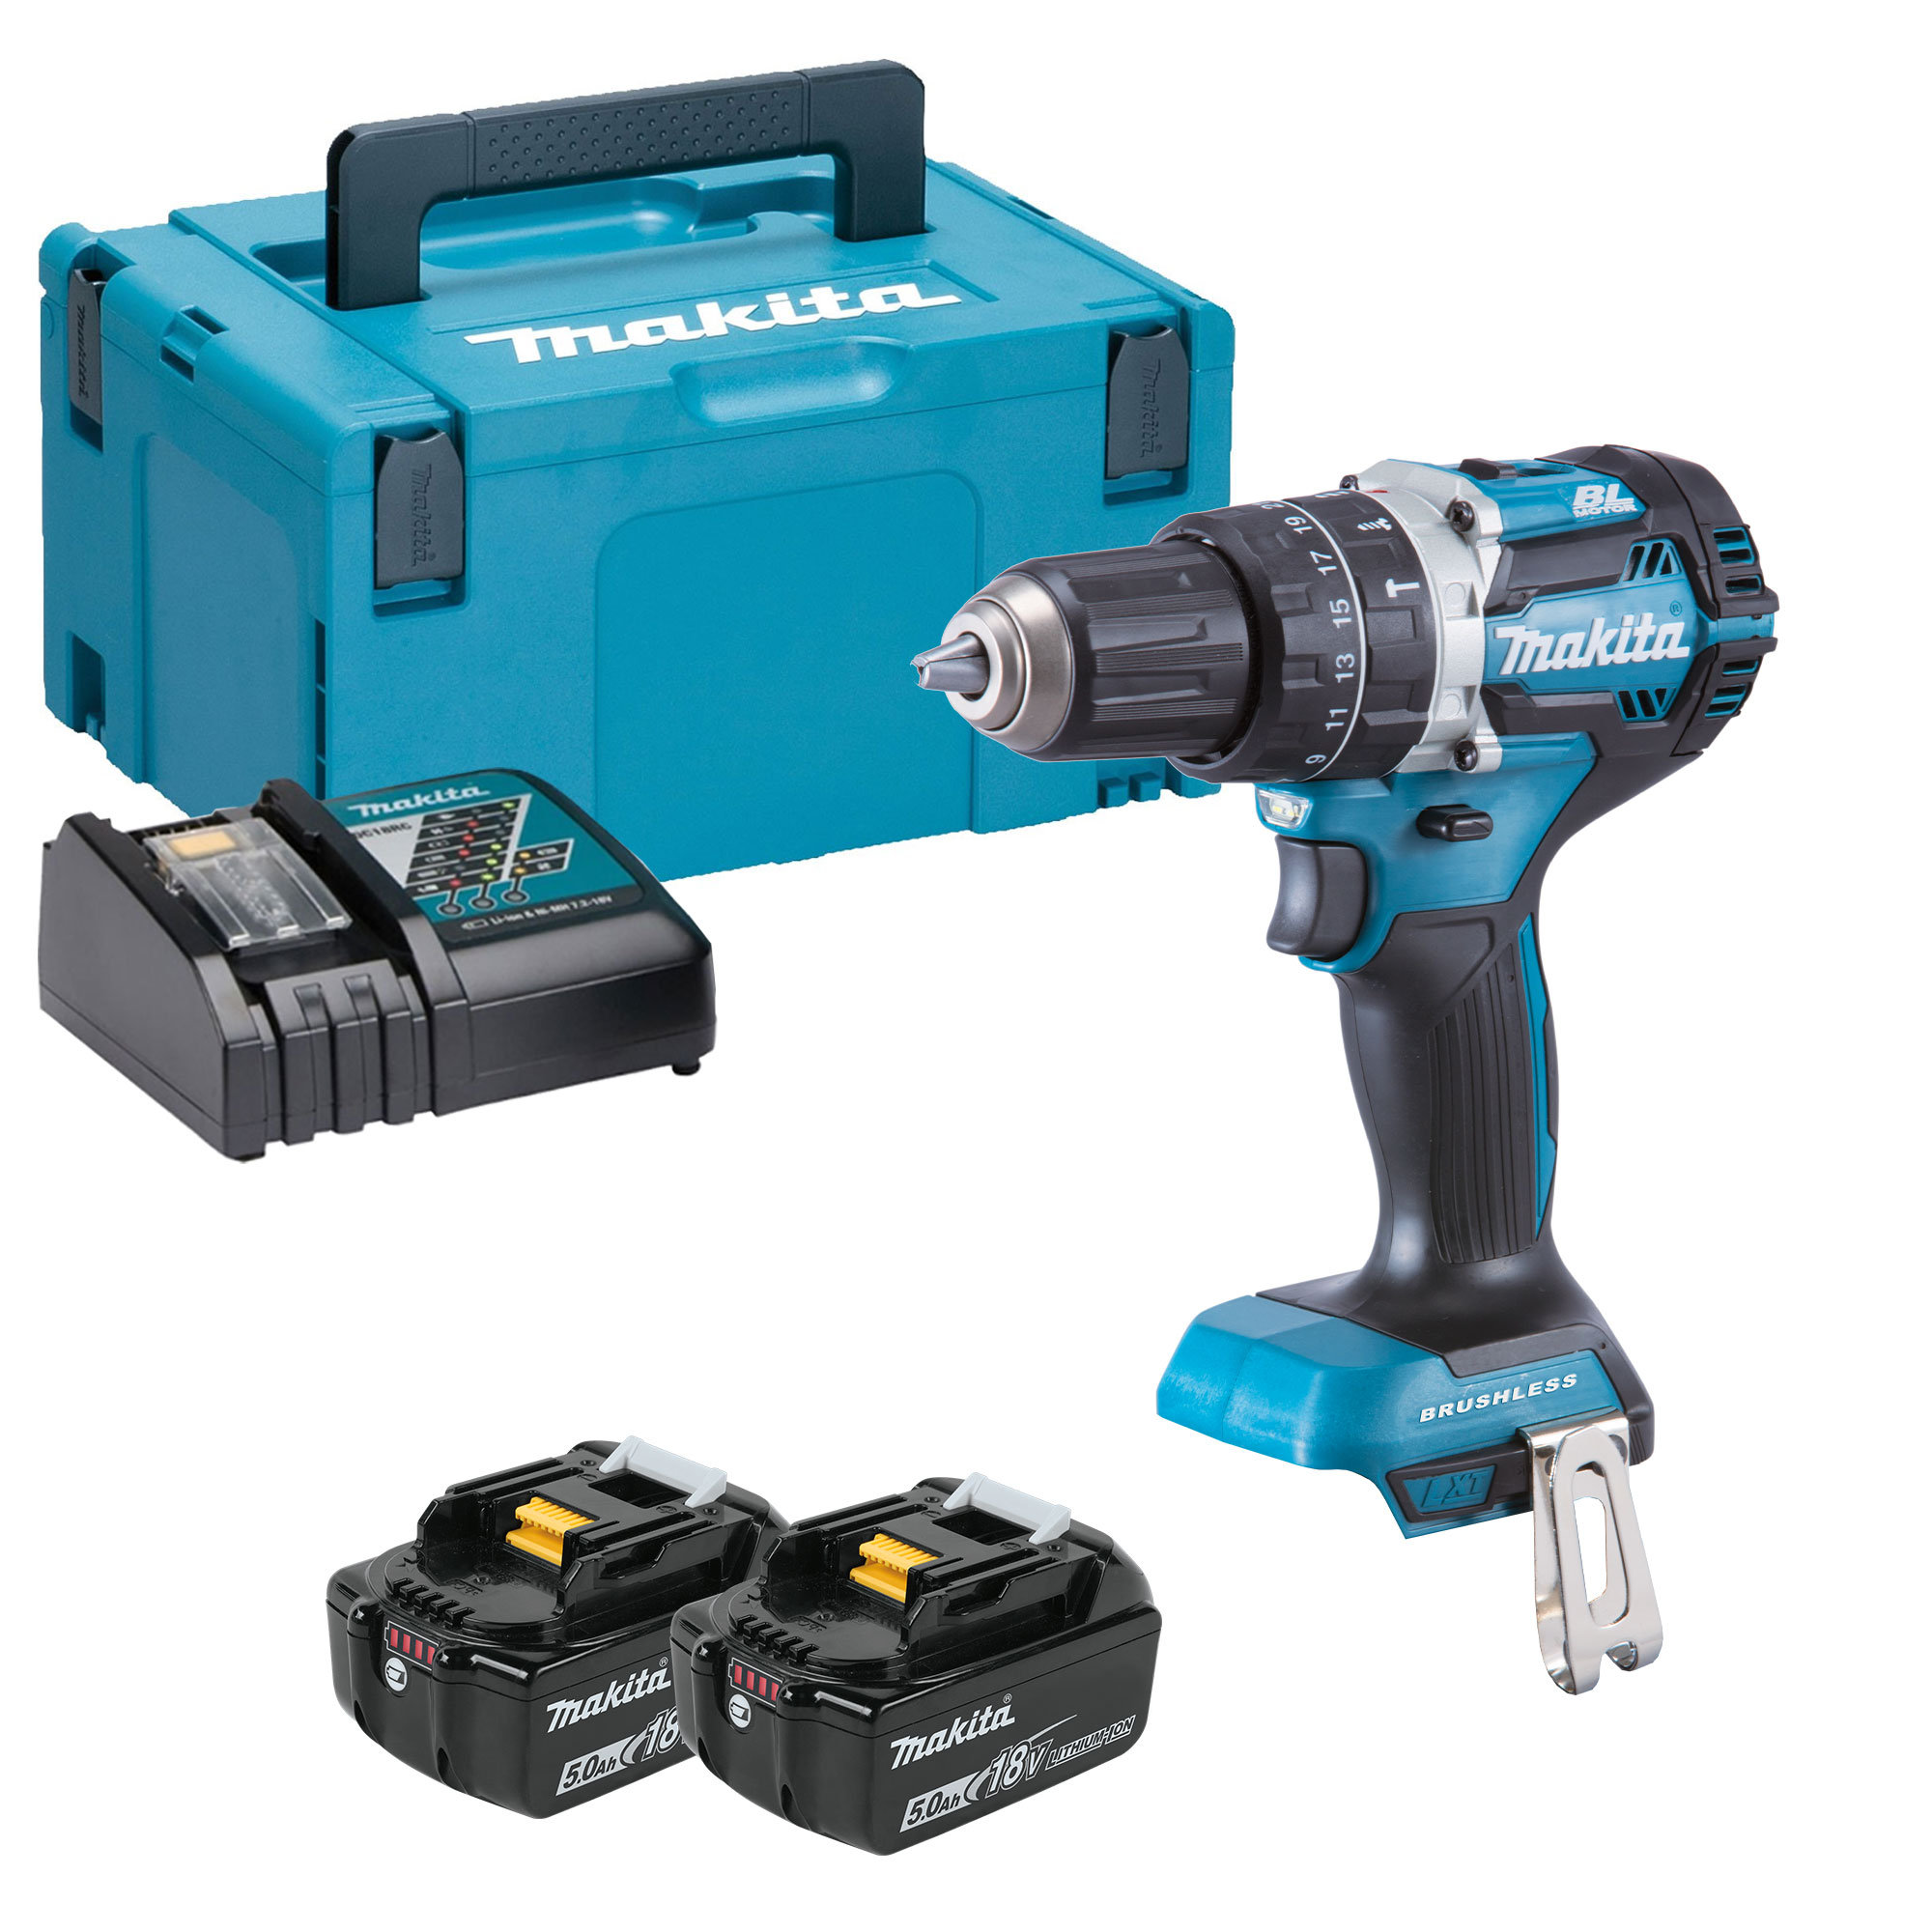 makita dhp484rtj makita 18v li ion 5 0ah brushless hammer drill driver. Black Bedroom Furniture Sets. Home Design Ideas